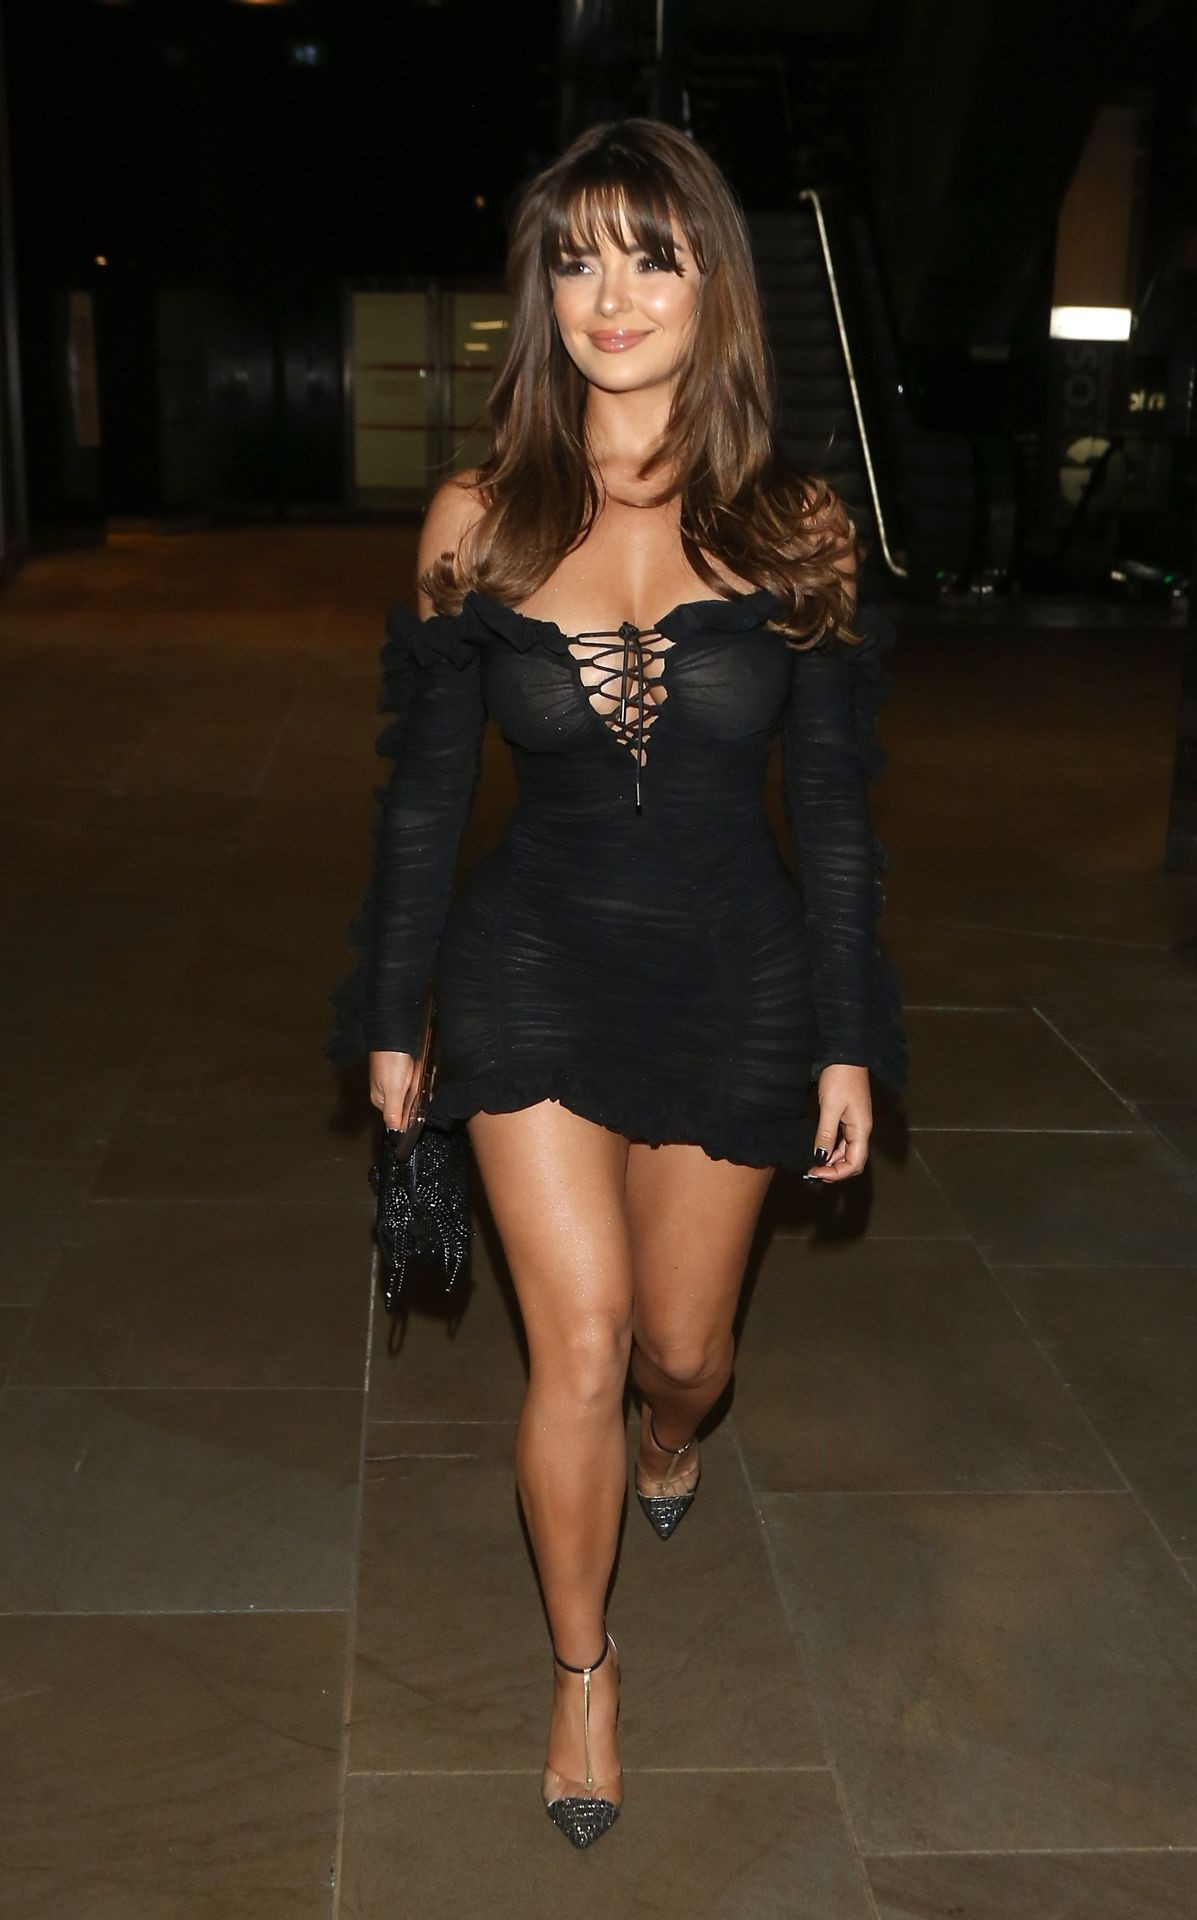 Demi Rose Mawby seen in Stylish Short Dress at The Skinny Tan Choc Range launch party in Madison, London 2019/11/19 15